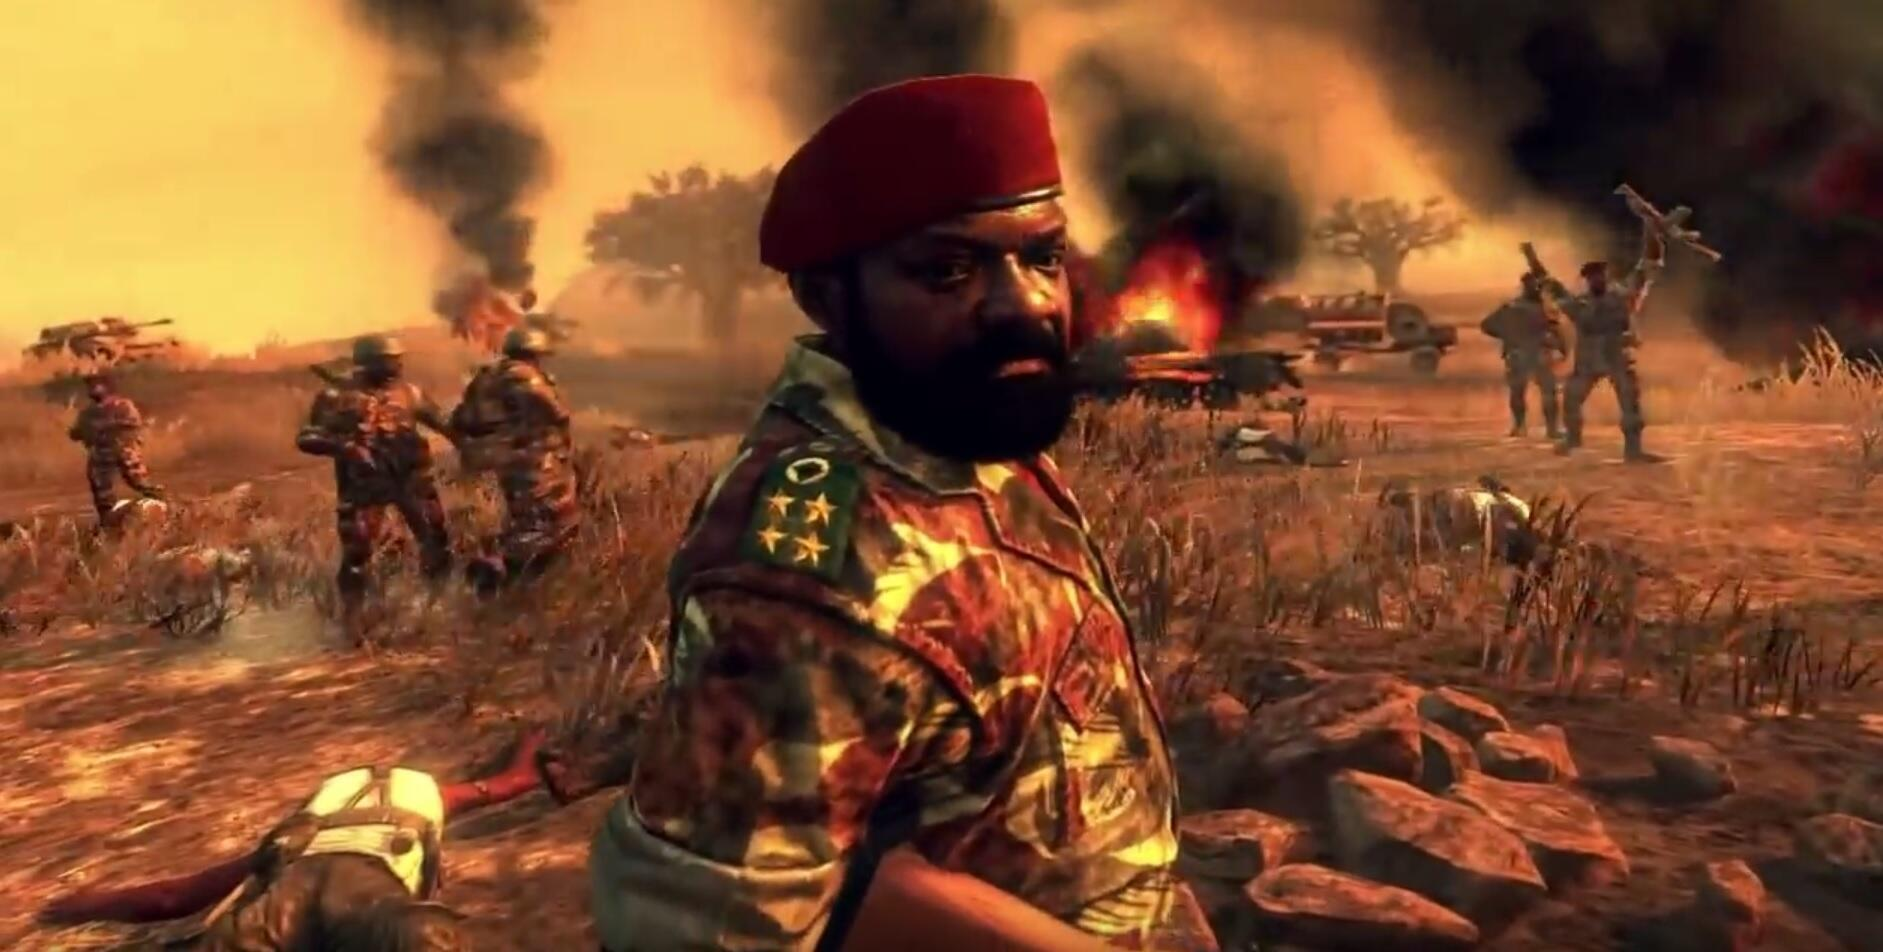 Savimbi's character in Call of Duty Black Ops II